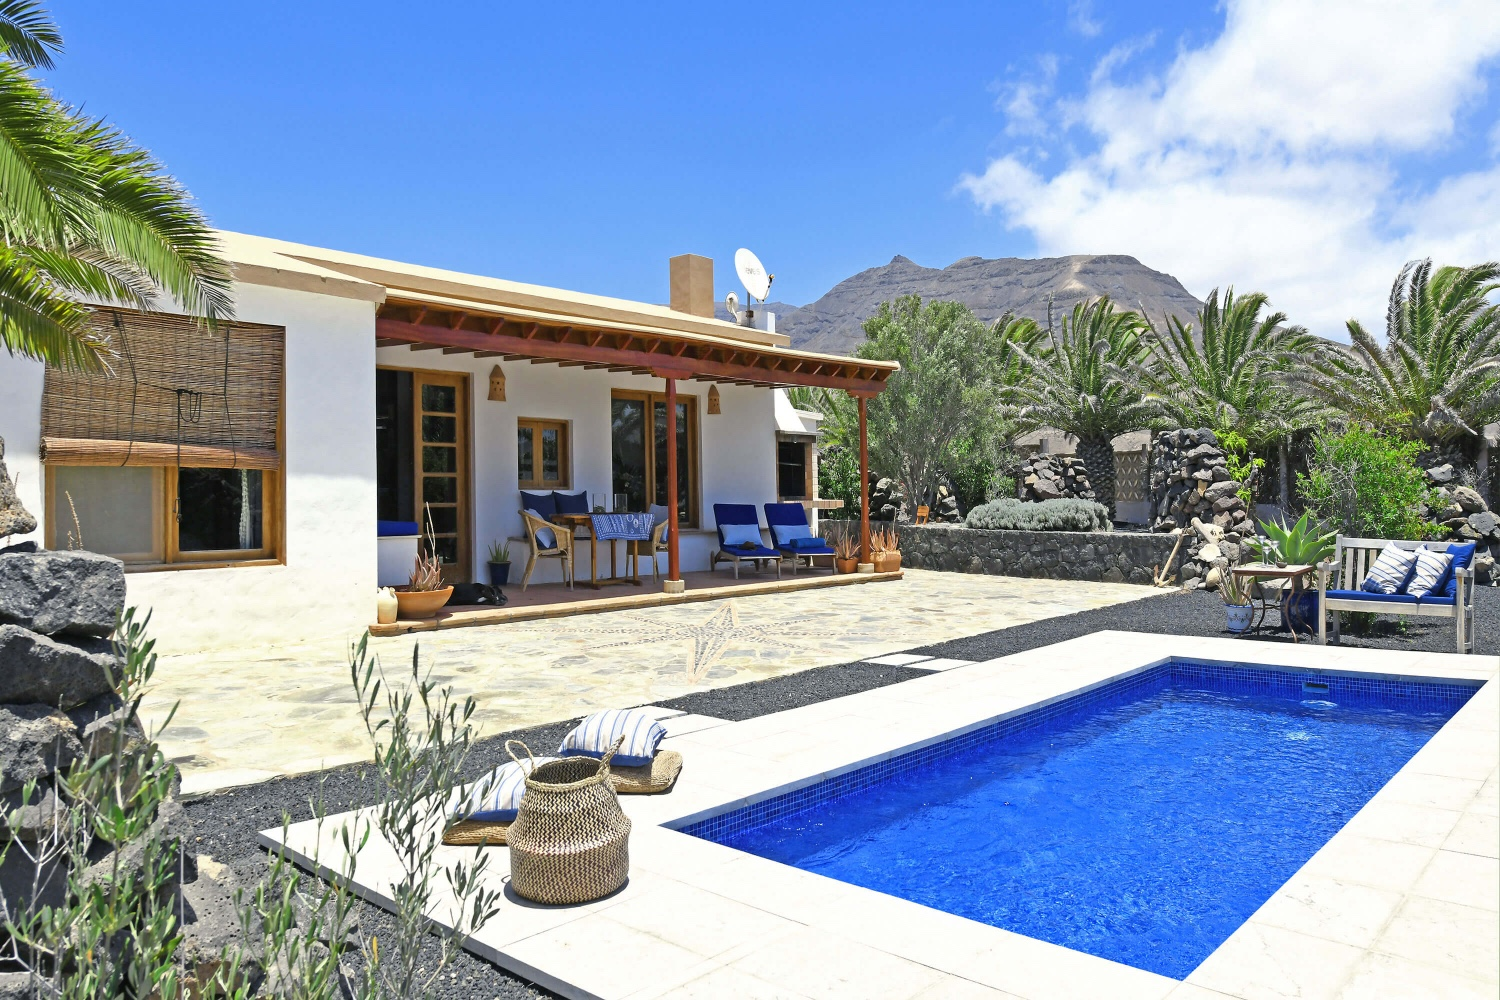 Beautiful two bedroom house to rent in a quiet area near the beach and with beautiful views of the volcanic landscape